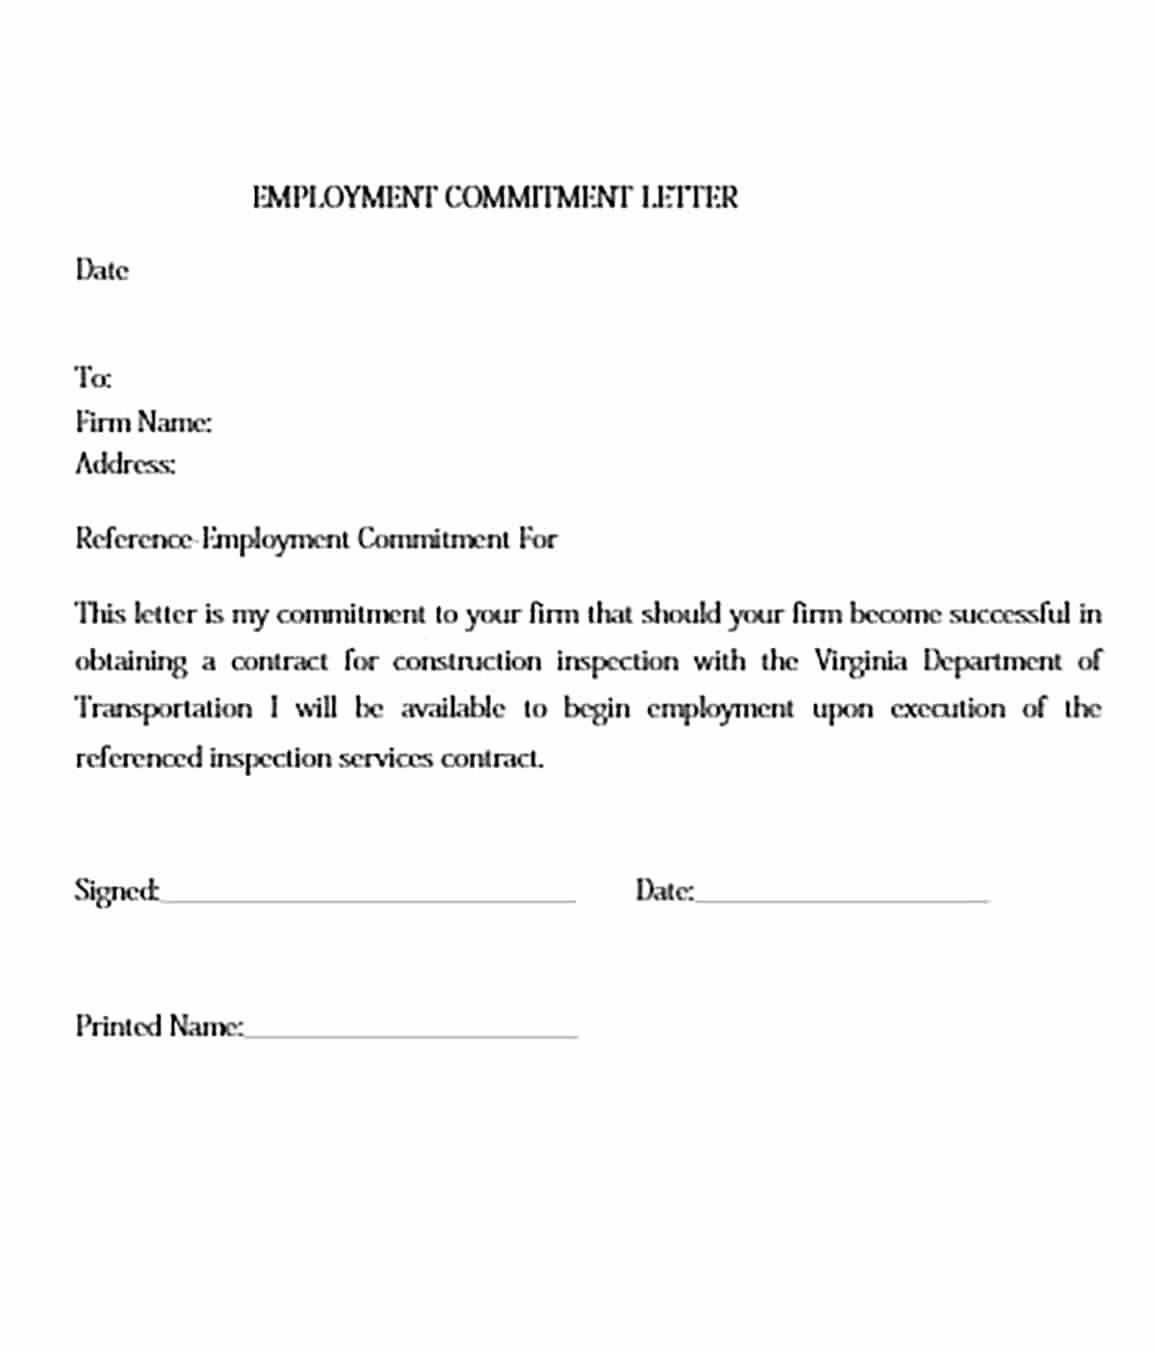 Letter Of Commitment Template Inspirational Mitment Letter And How To Make It Impressive To Read Doctors Note Template Marketing Plan Example Lettering